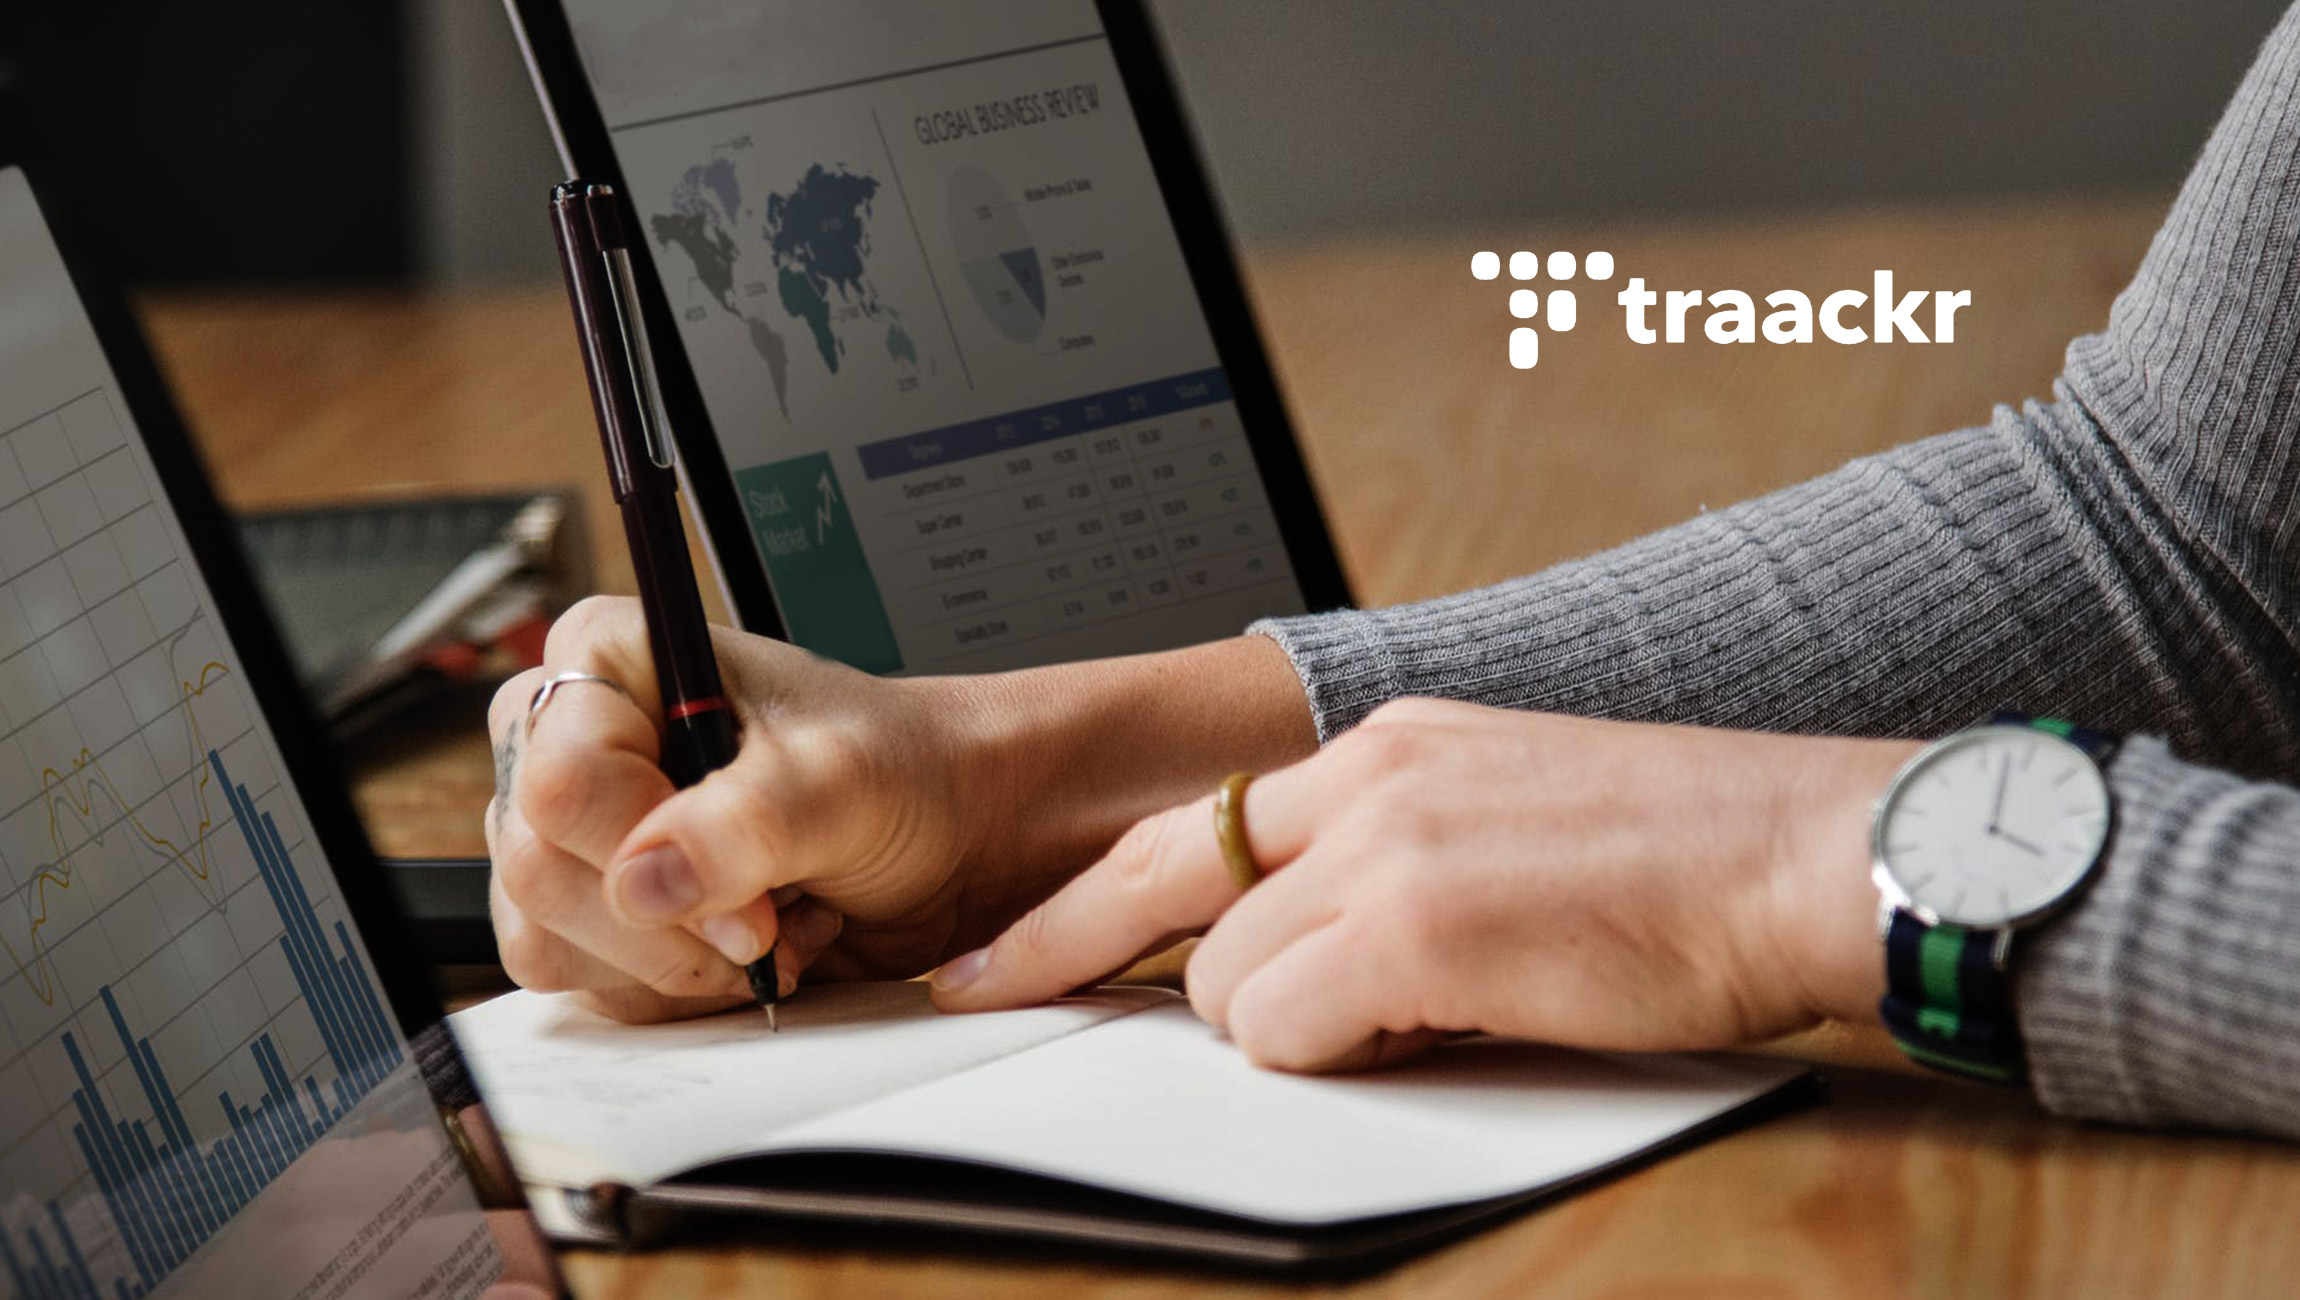 Traackr Unveils New Influencer Discovery Capabilities to Evaluate Audience Quality and Brand Value Alignment